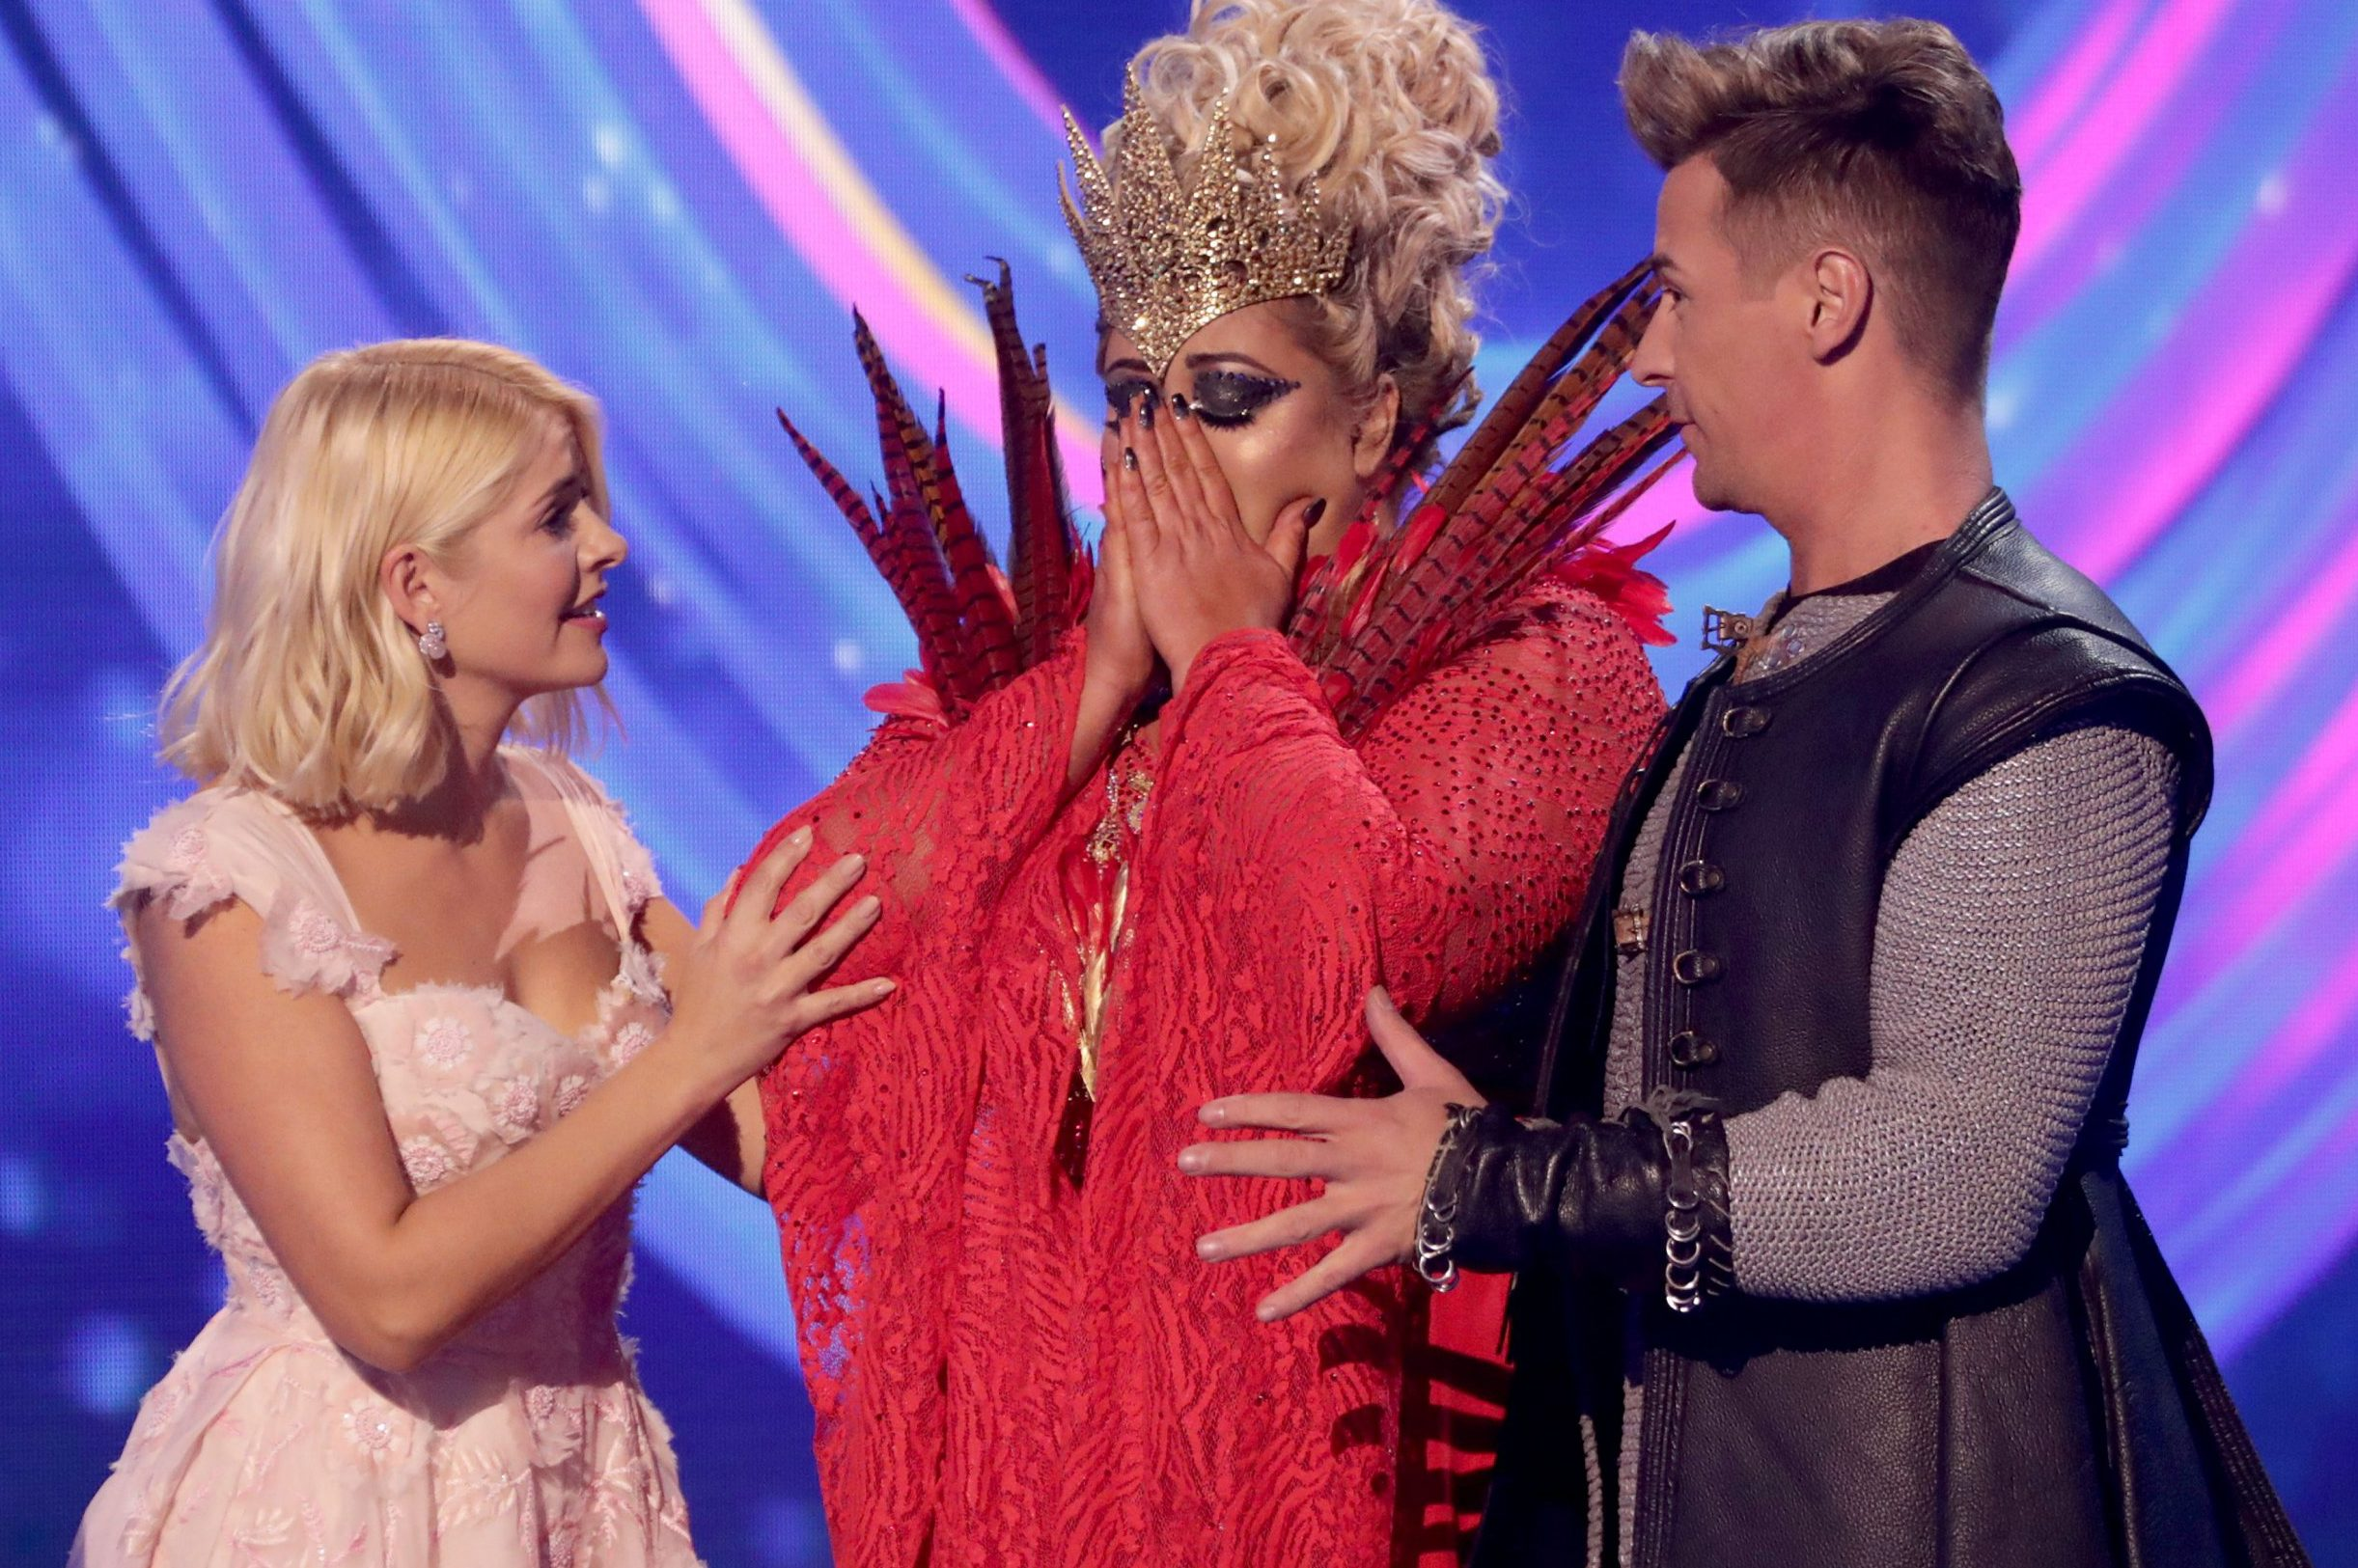 Gemma Collins 'absolutely terrified' of Dancing On Ice after fall as she prepares for jumps this weekend